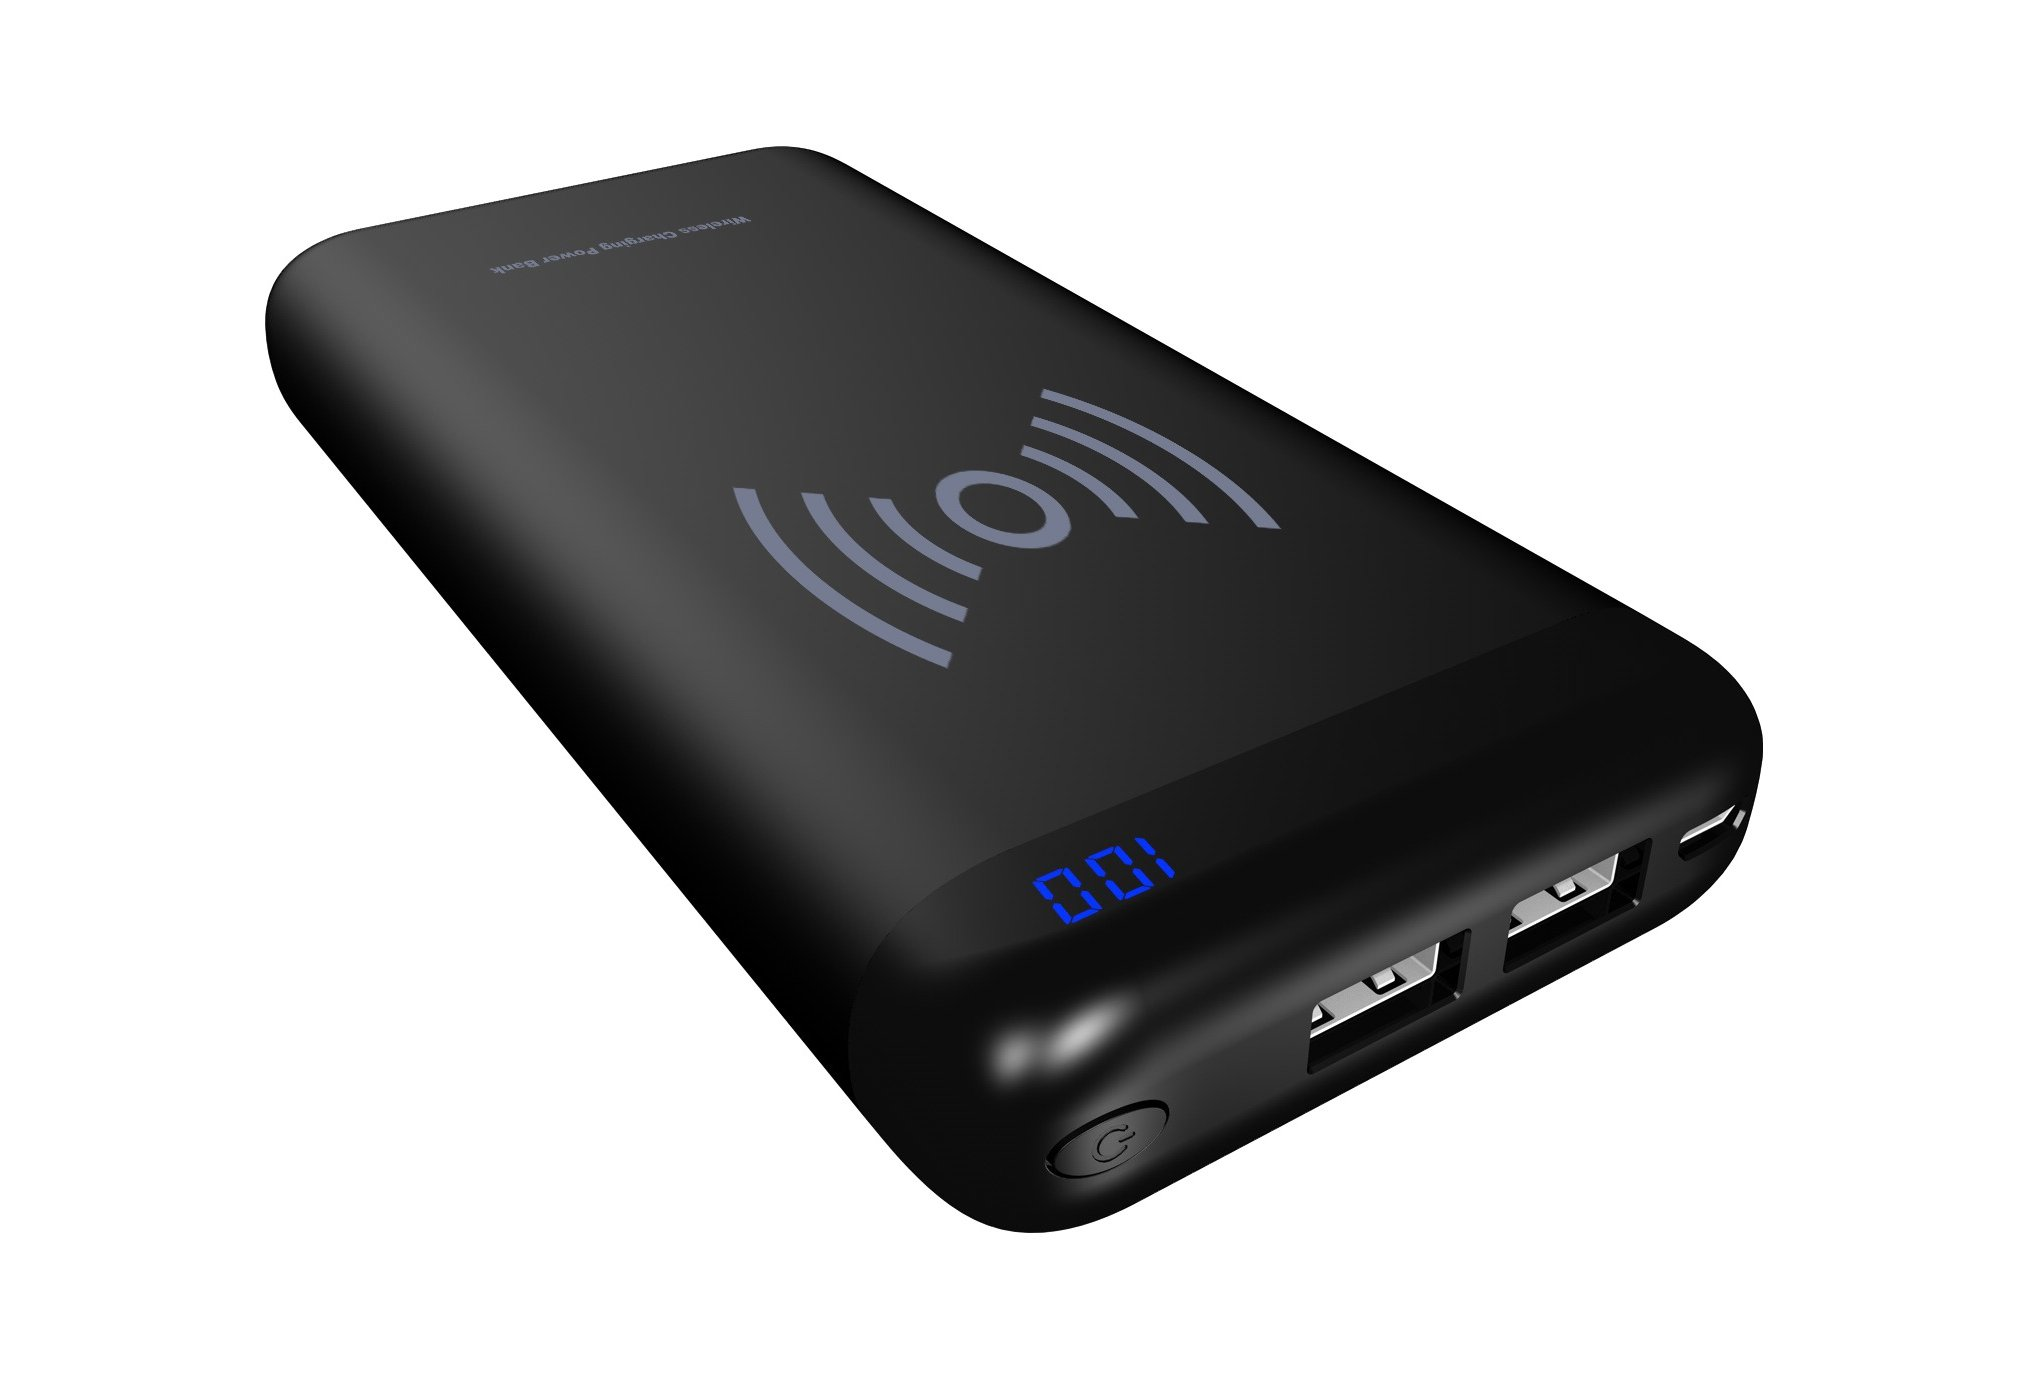 X-Moove Powergo Contact Batterie externe